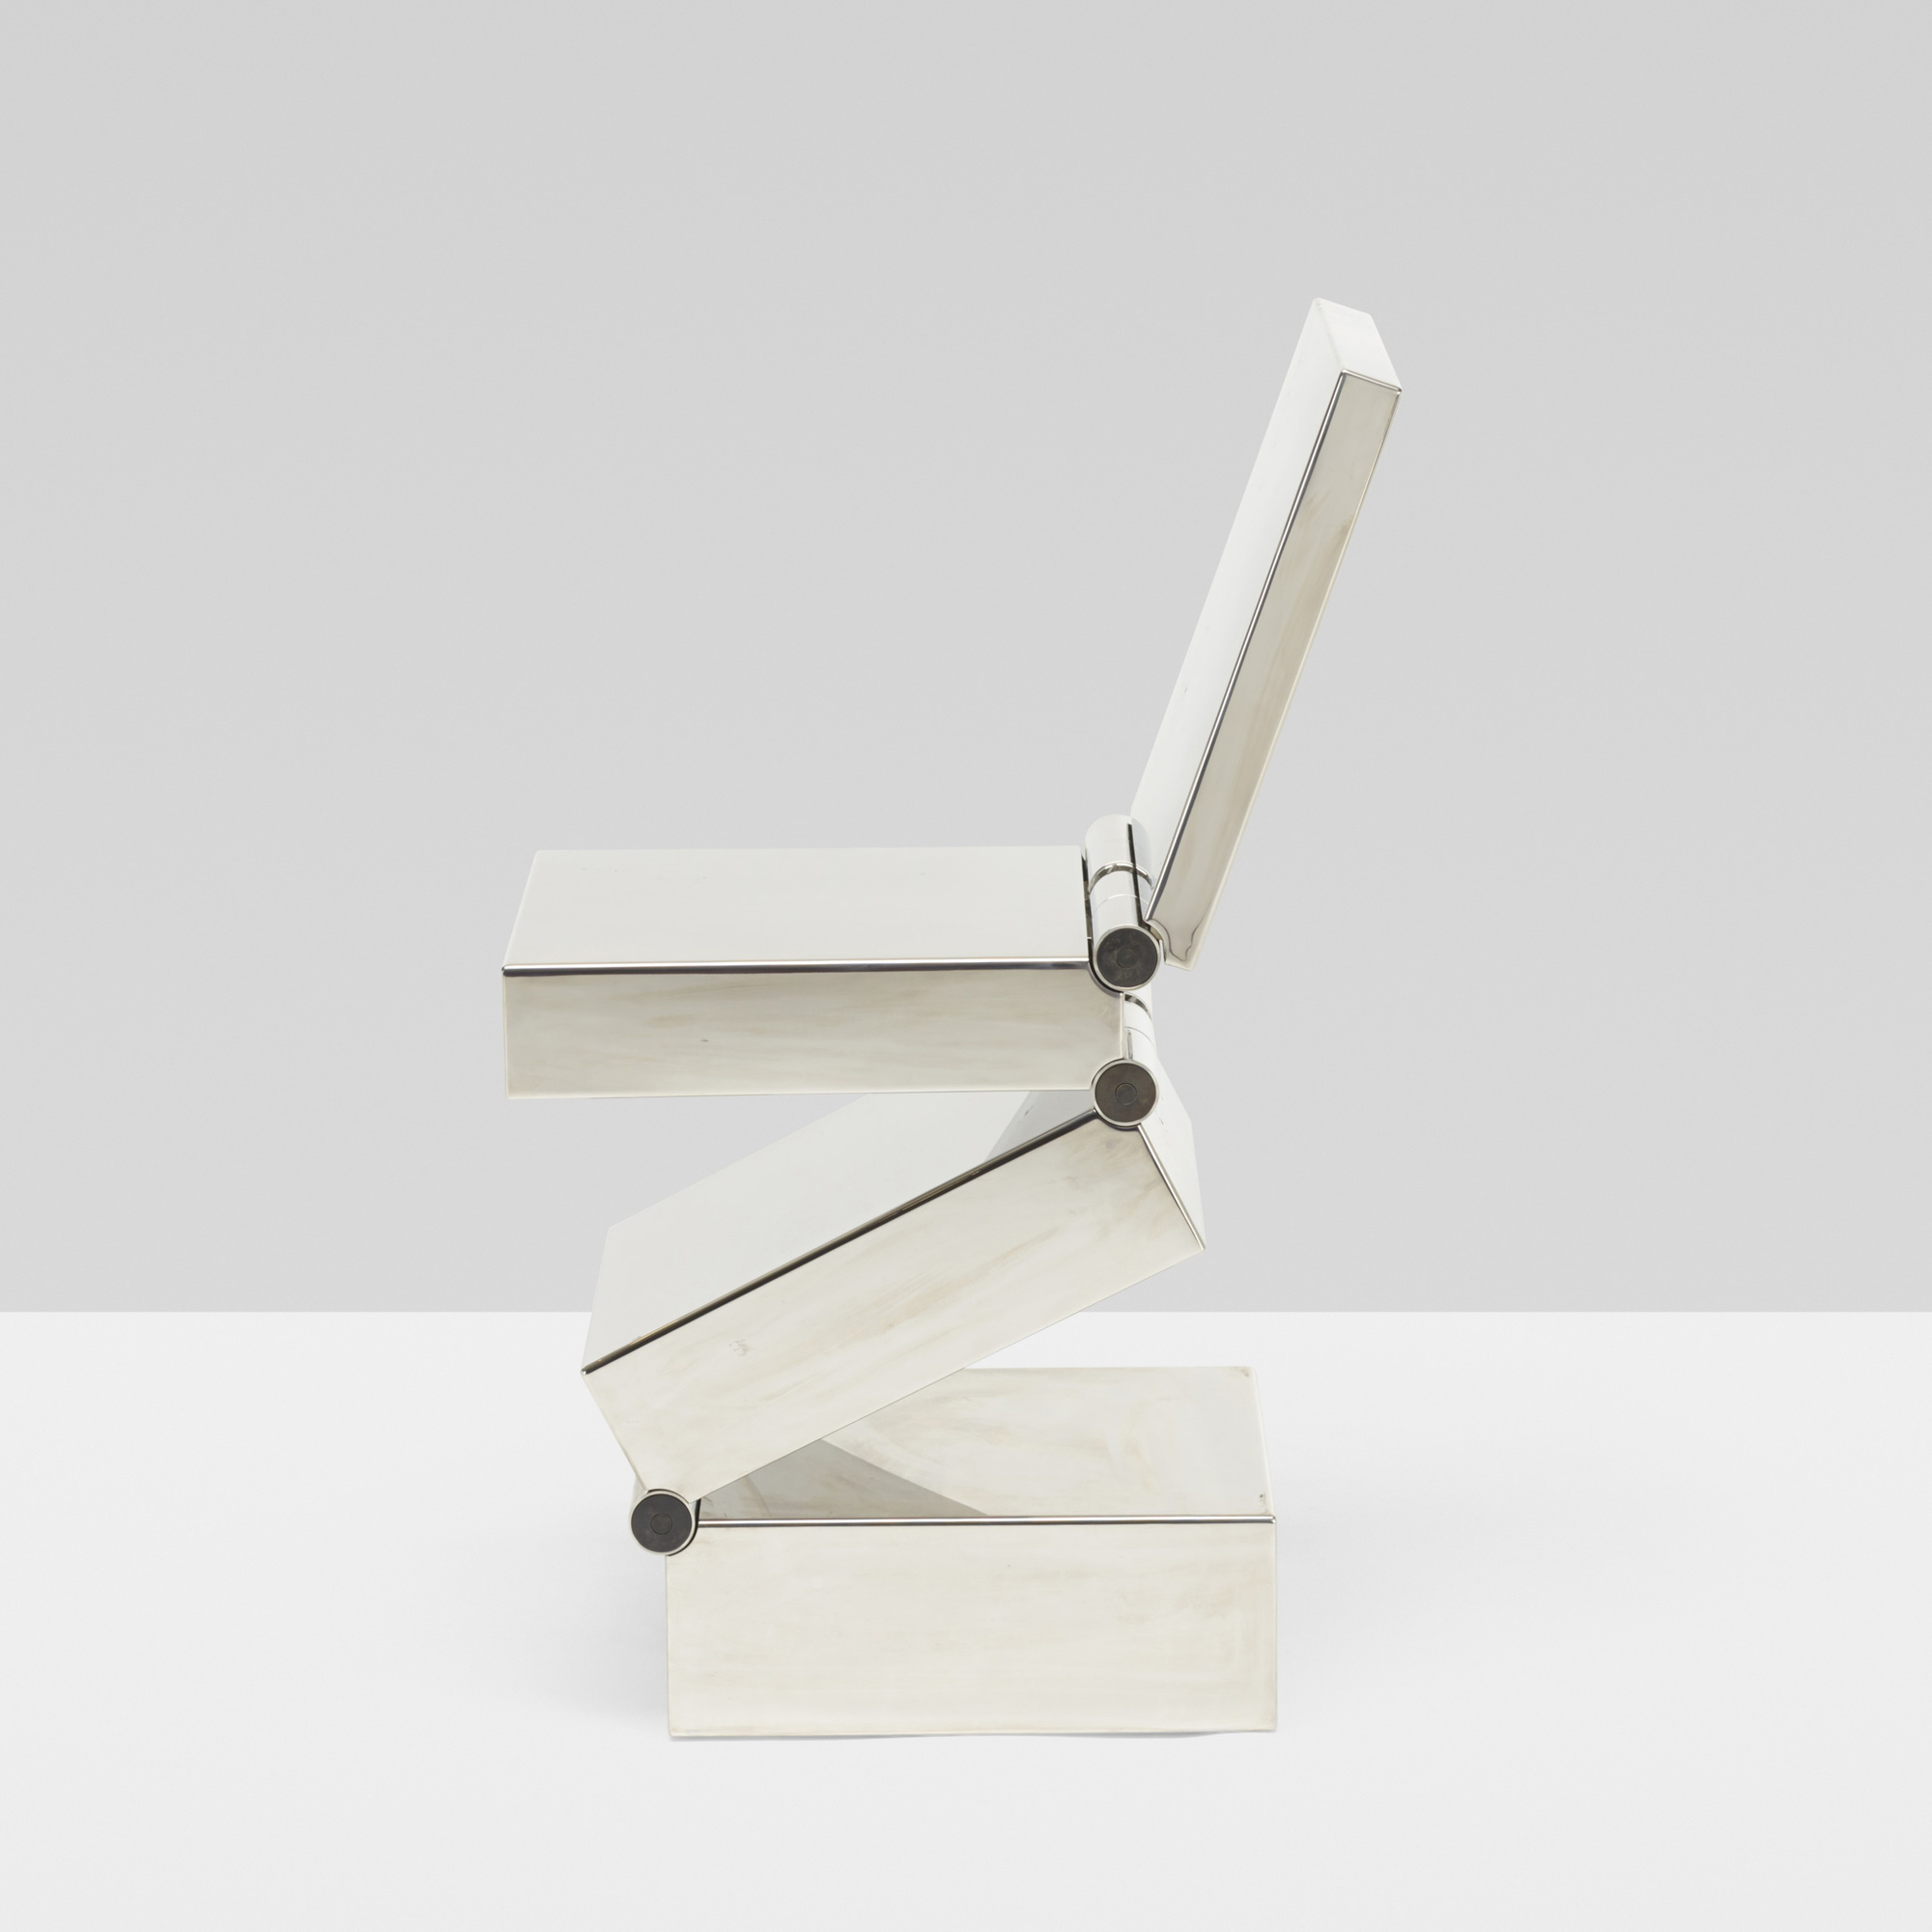 276: Ron Arad / Box in Four Movements chair (3 of 5)